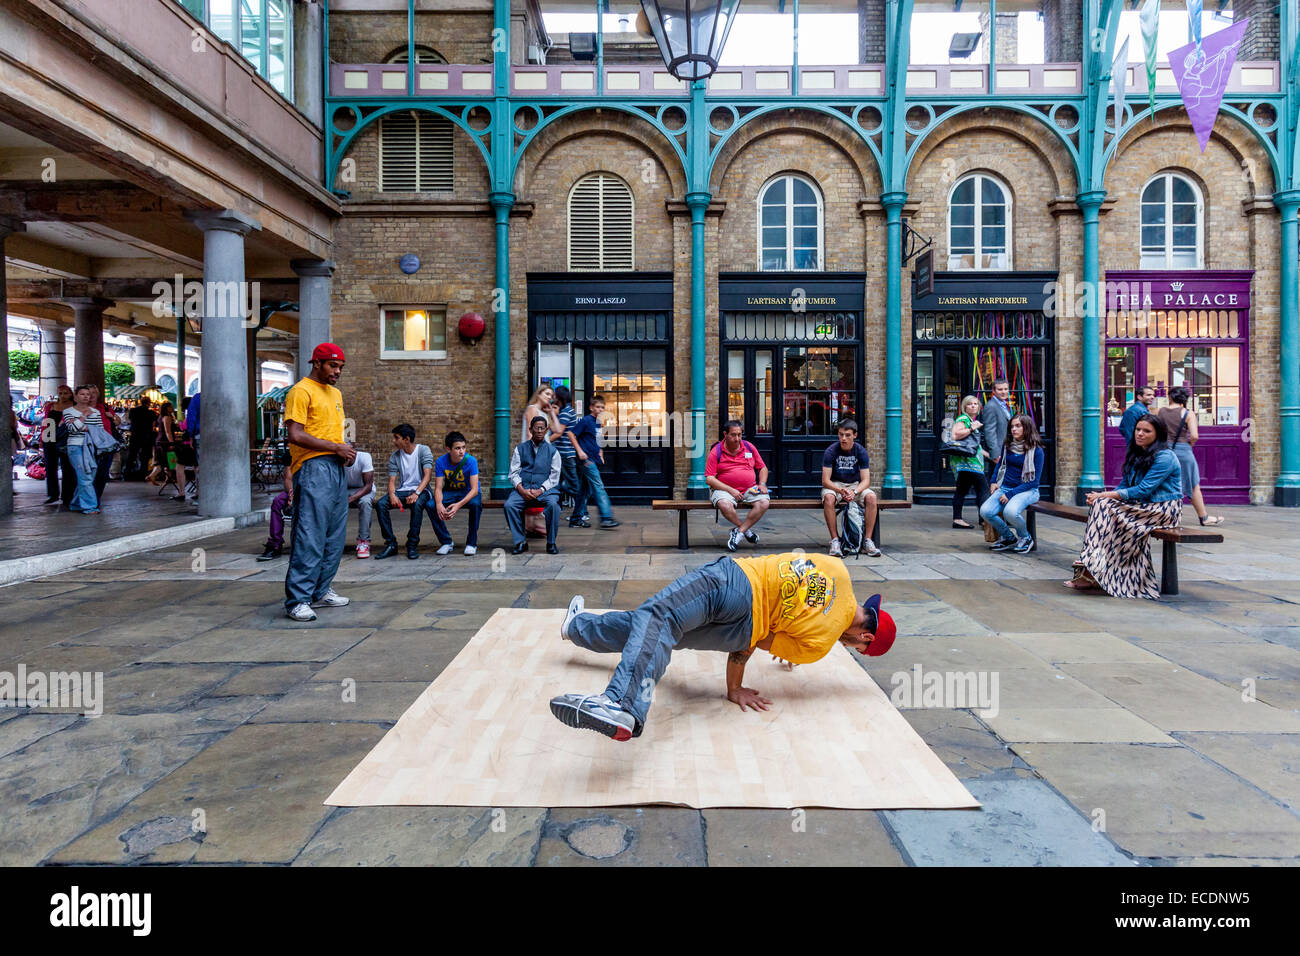 Street Entertainers In Covent Garden, London, England - Stock Image